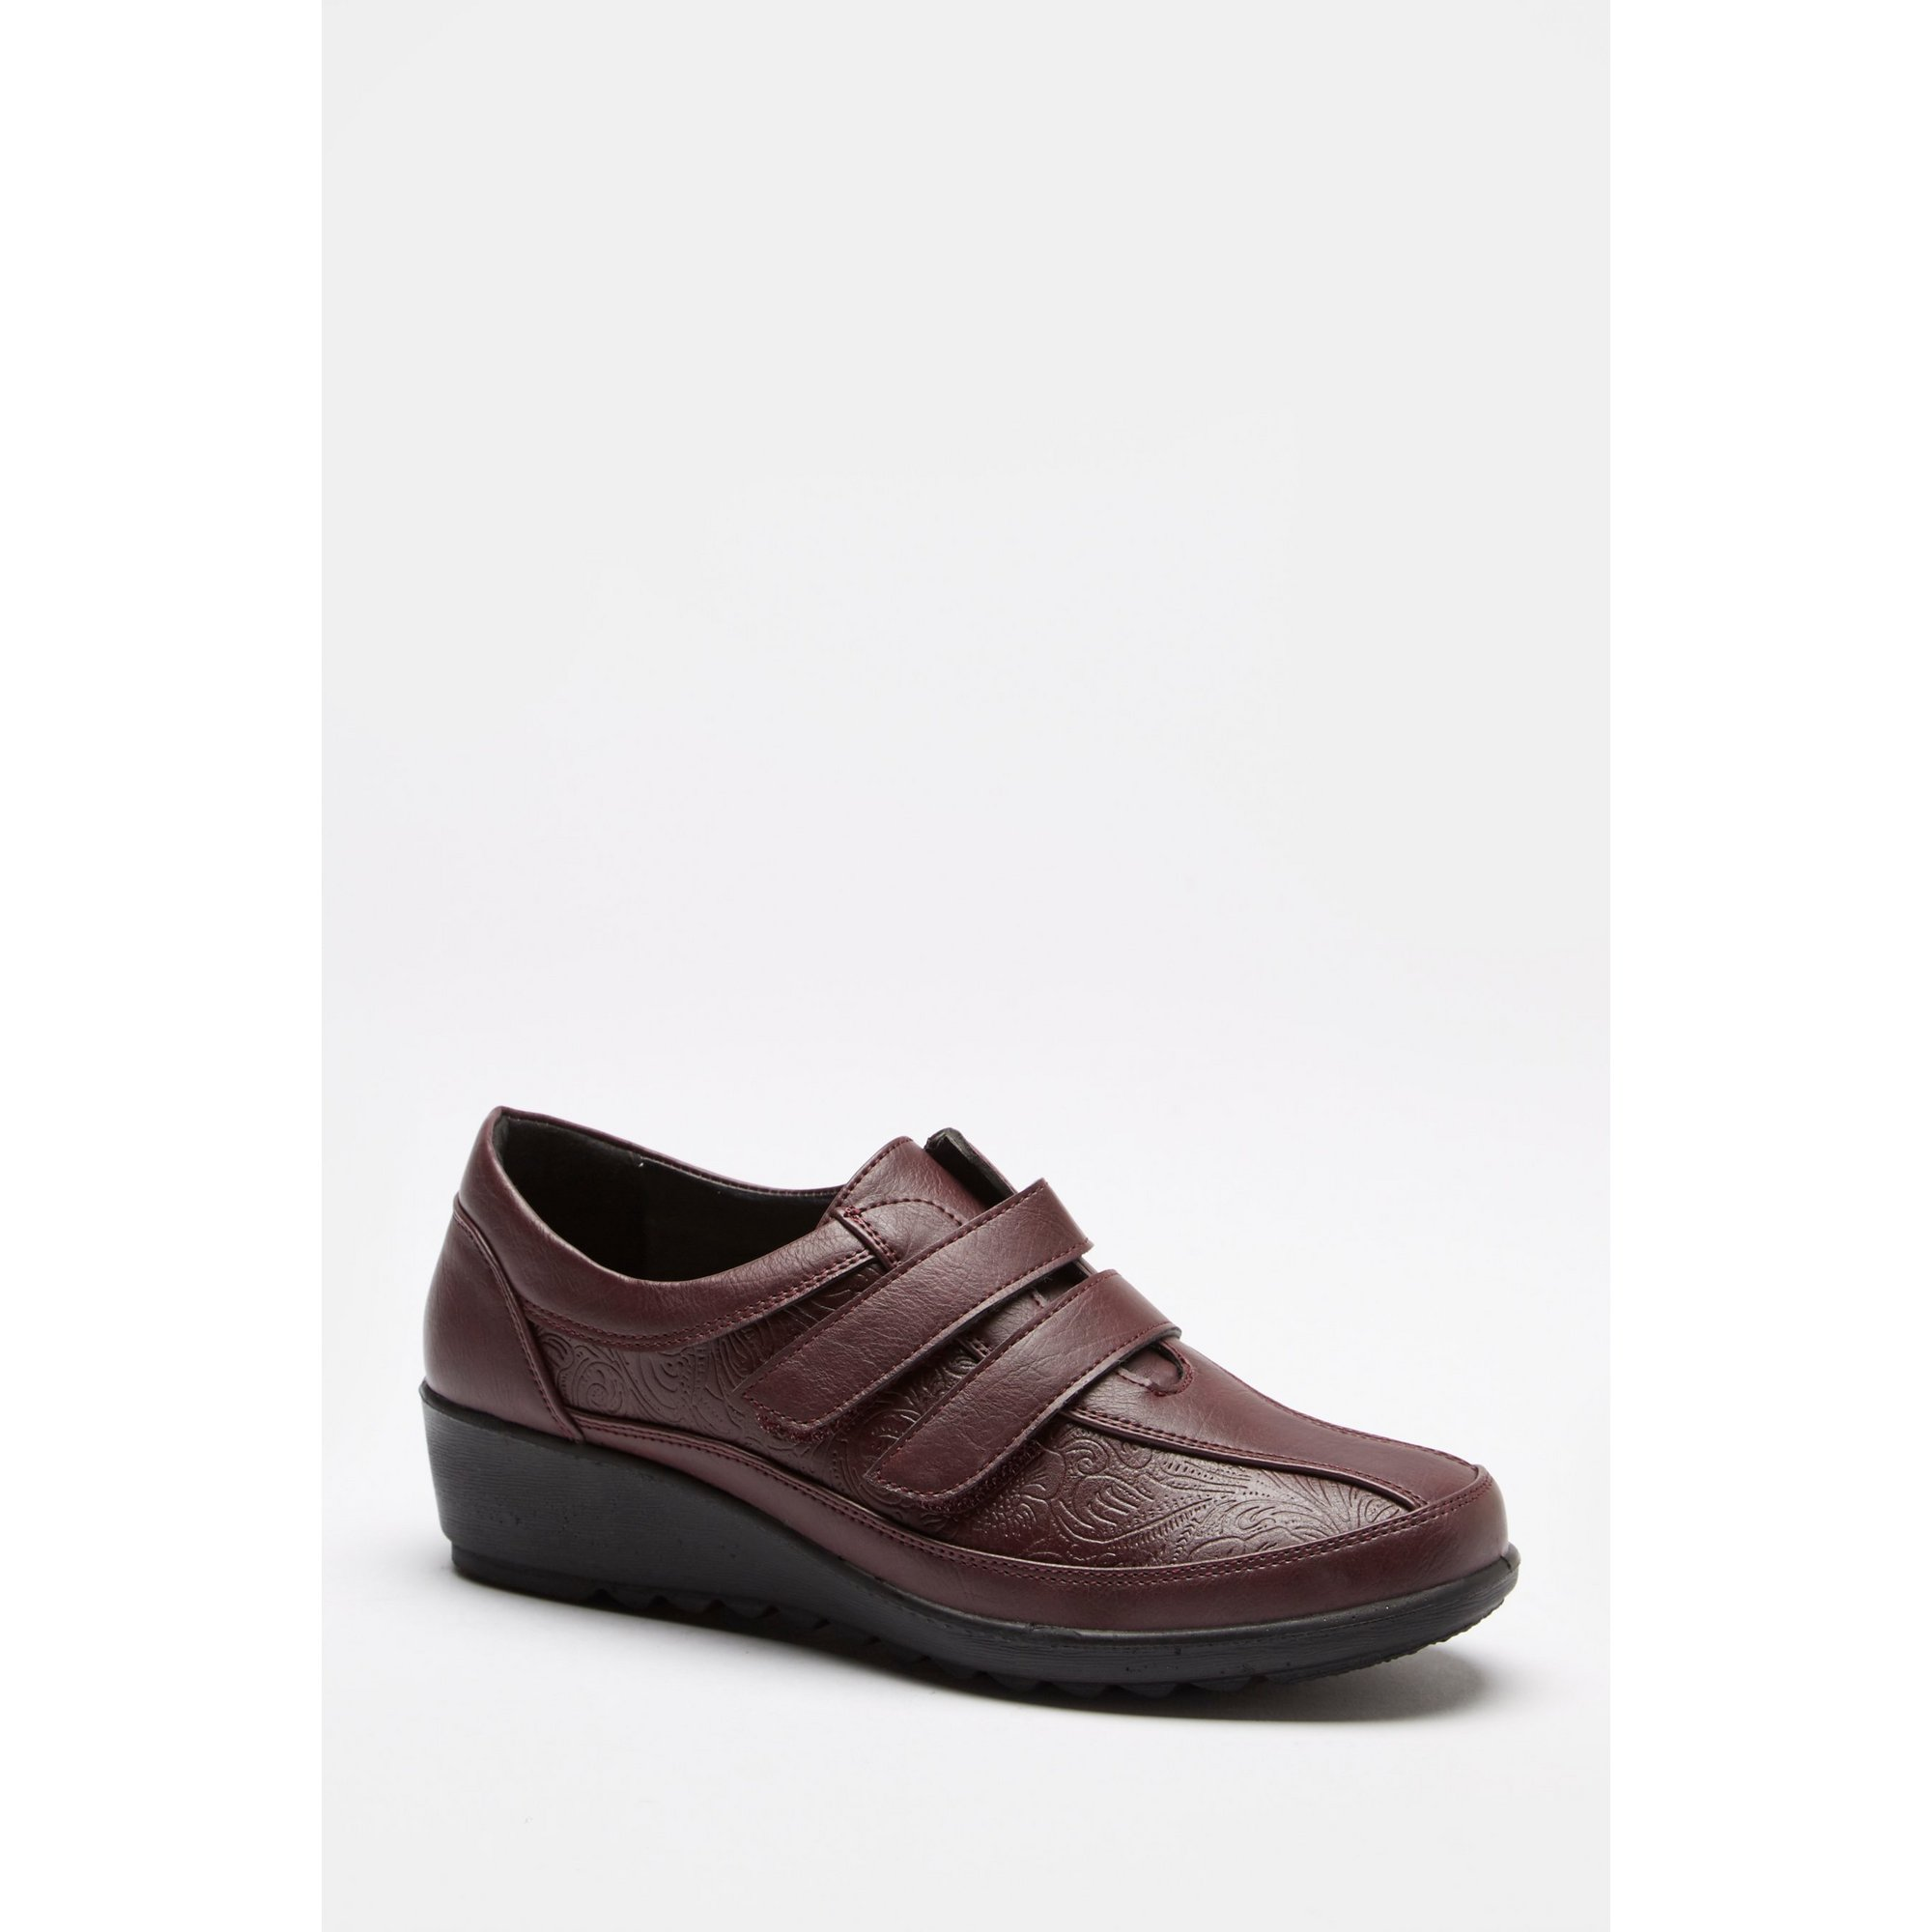 Image of Cushion Walk Burgundy Floral Embossed Strap Shoes